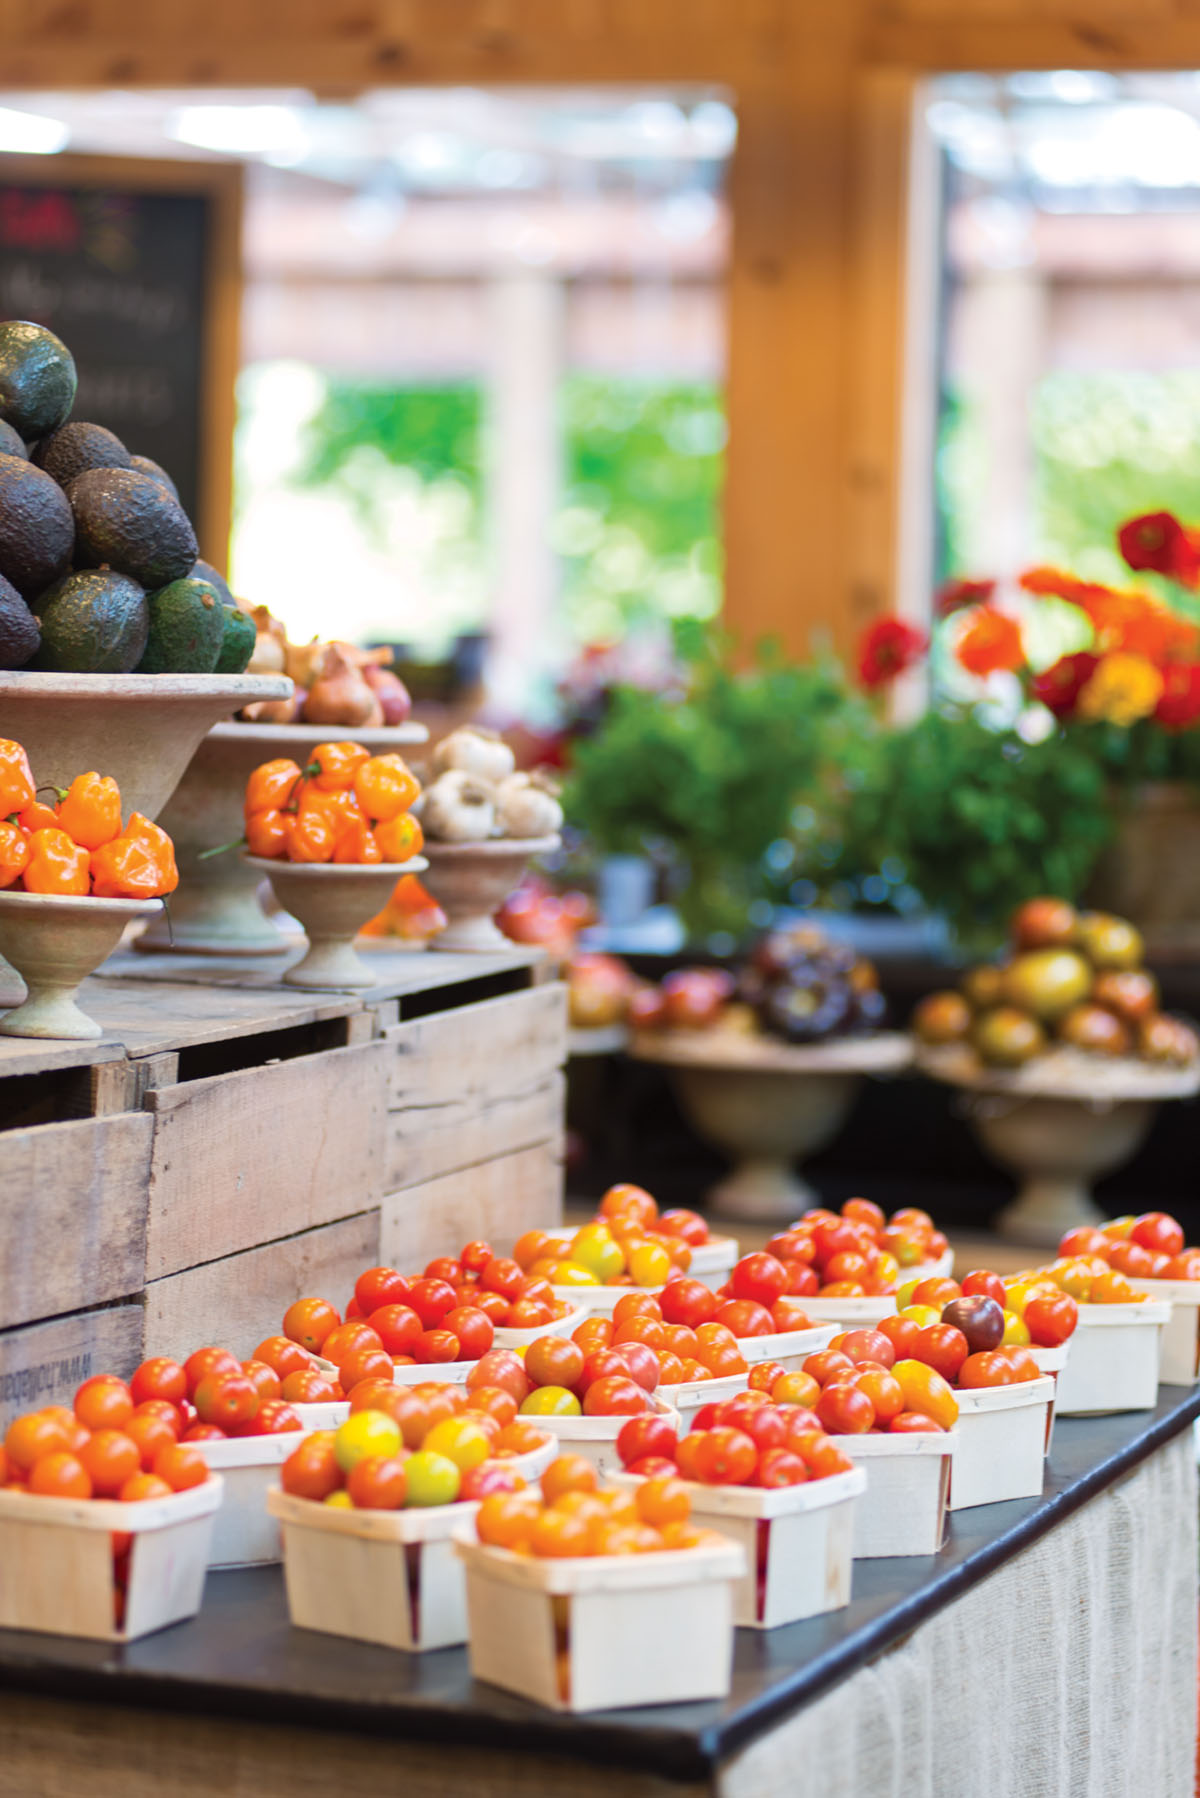 display of tomatoes in quart sized containers. Above, compote bowls stacked on wooden crates display peppers, garlic heads, shallots, and avocados